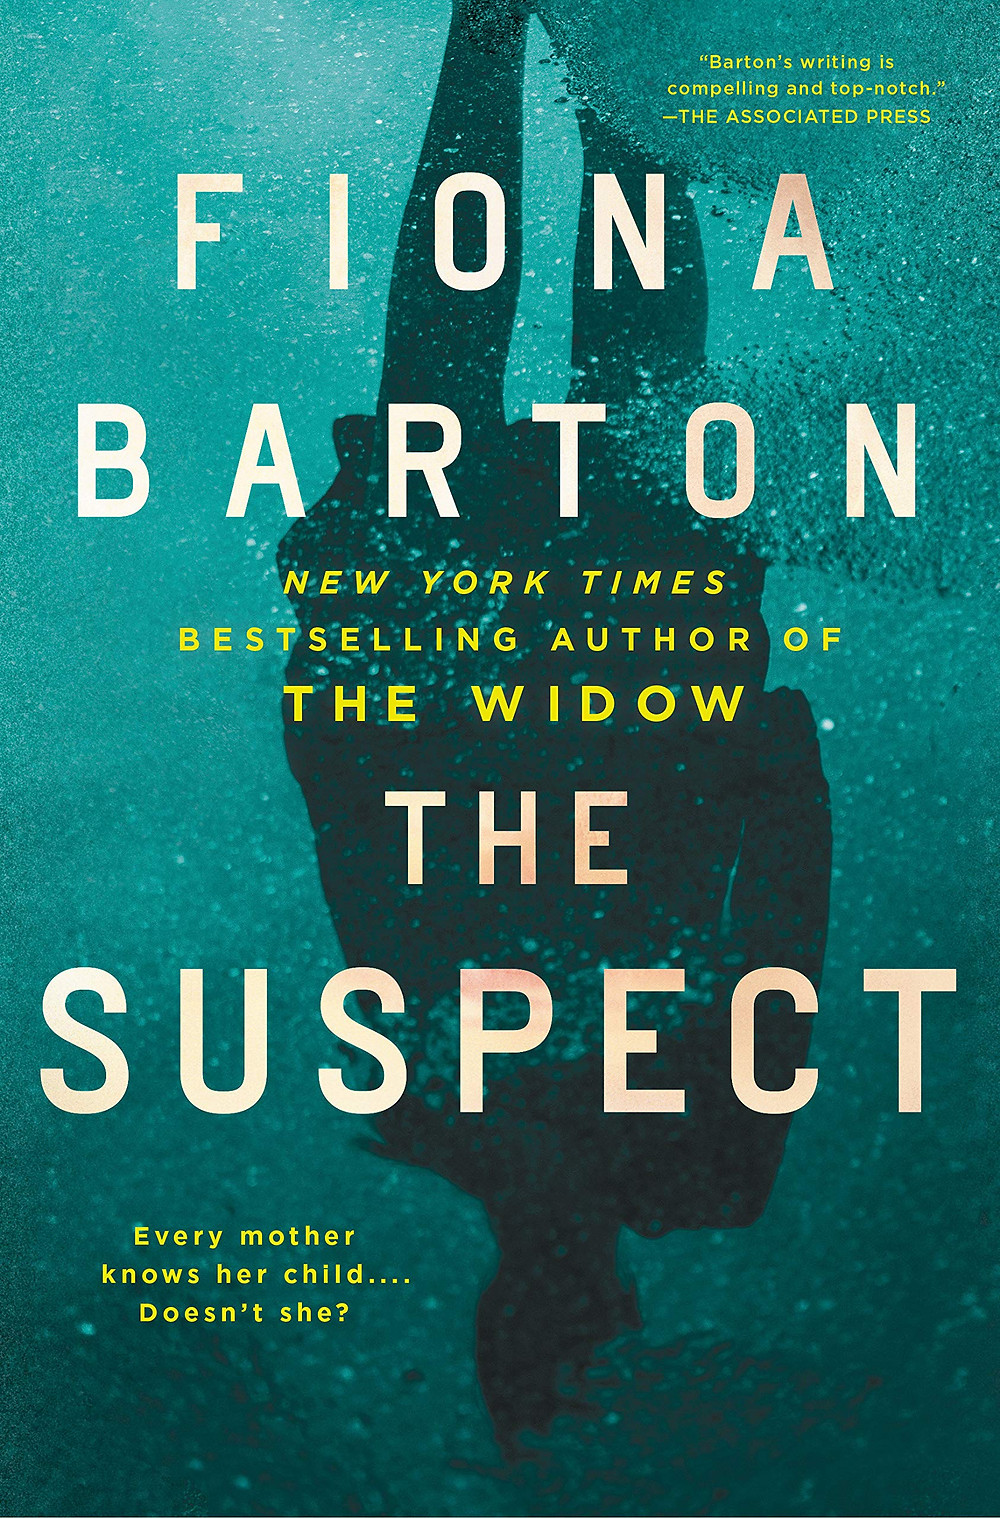 Book cover of The Suspect by Fiona Barton.